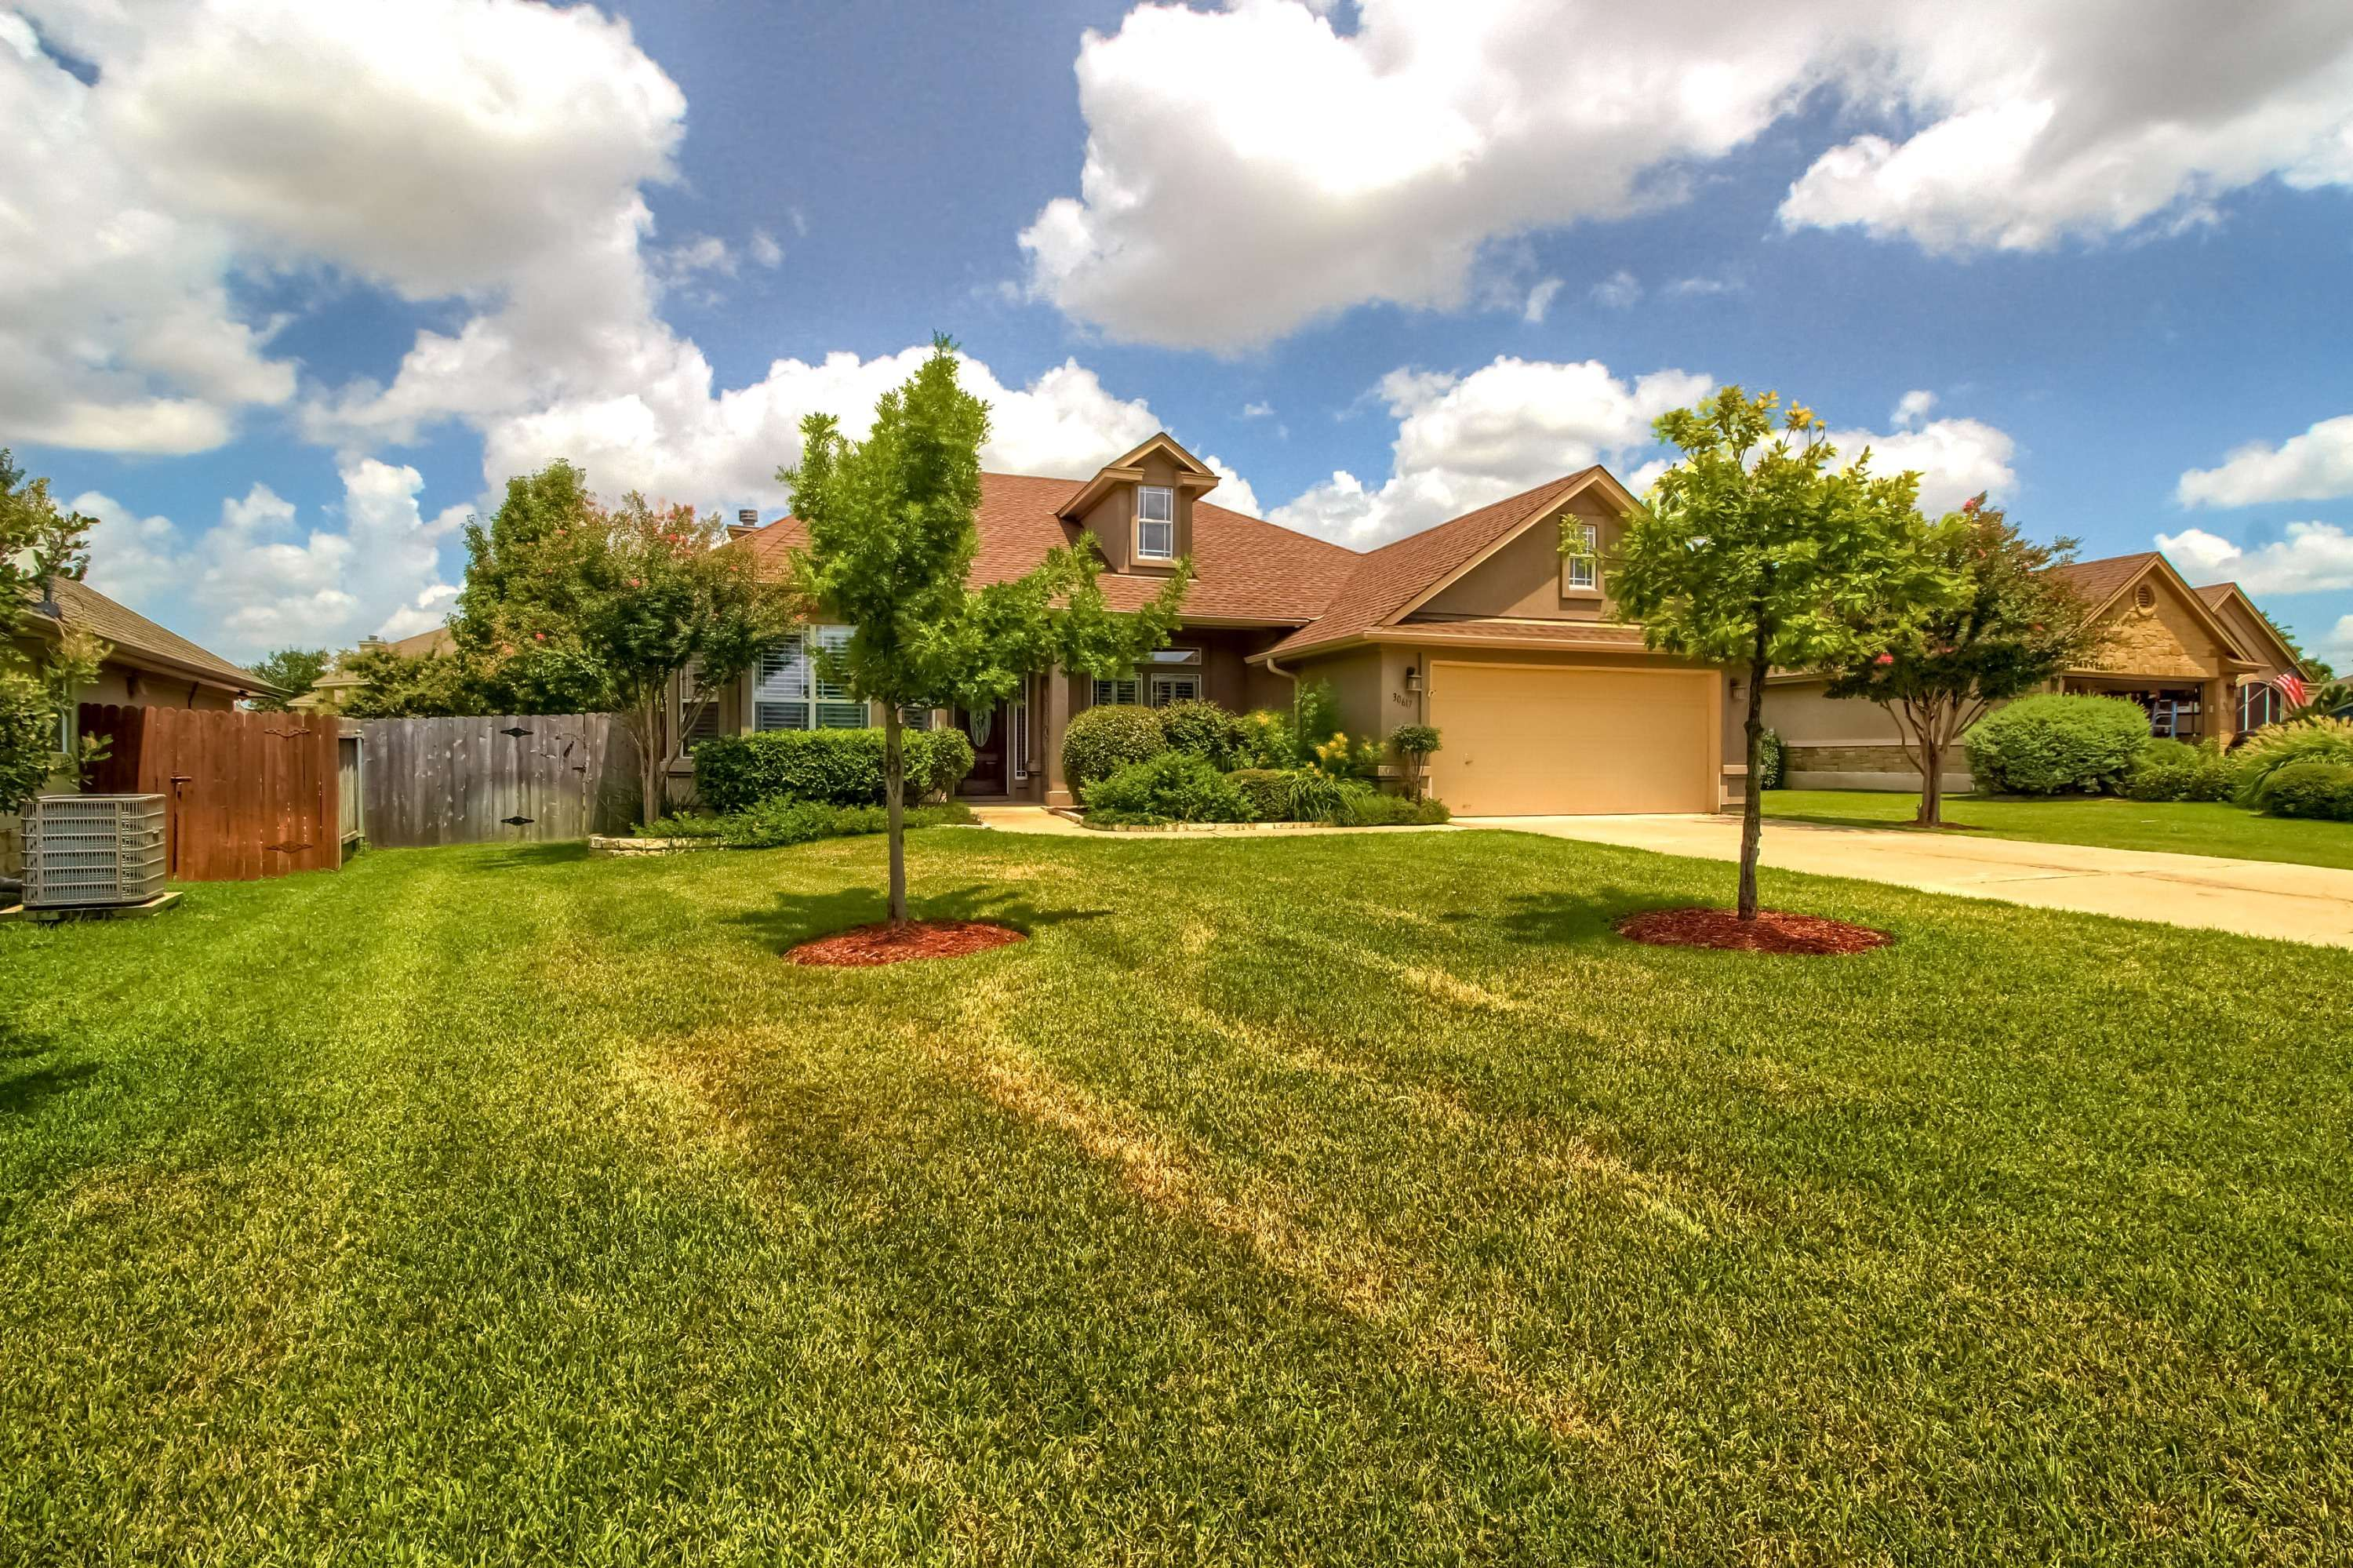 Georgetown TX home in Berry Creek